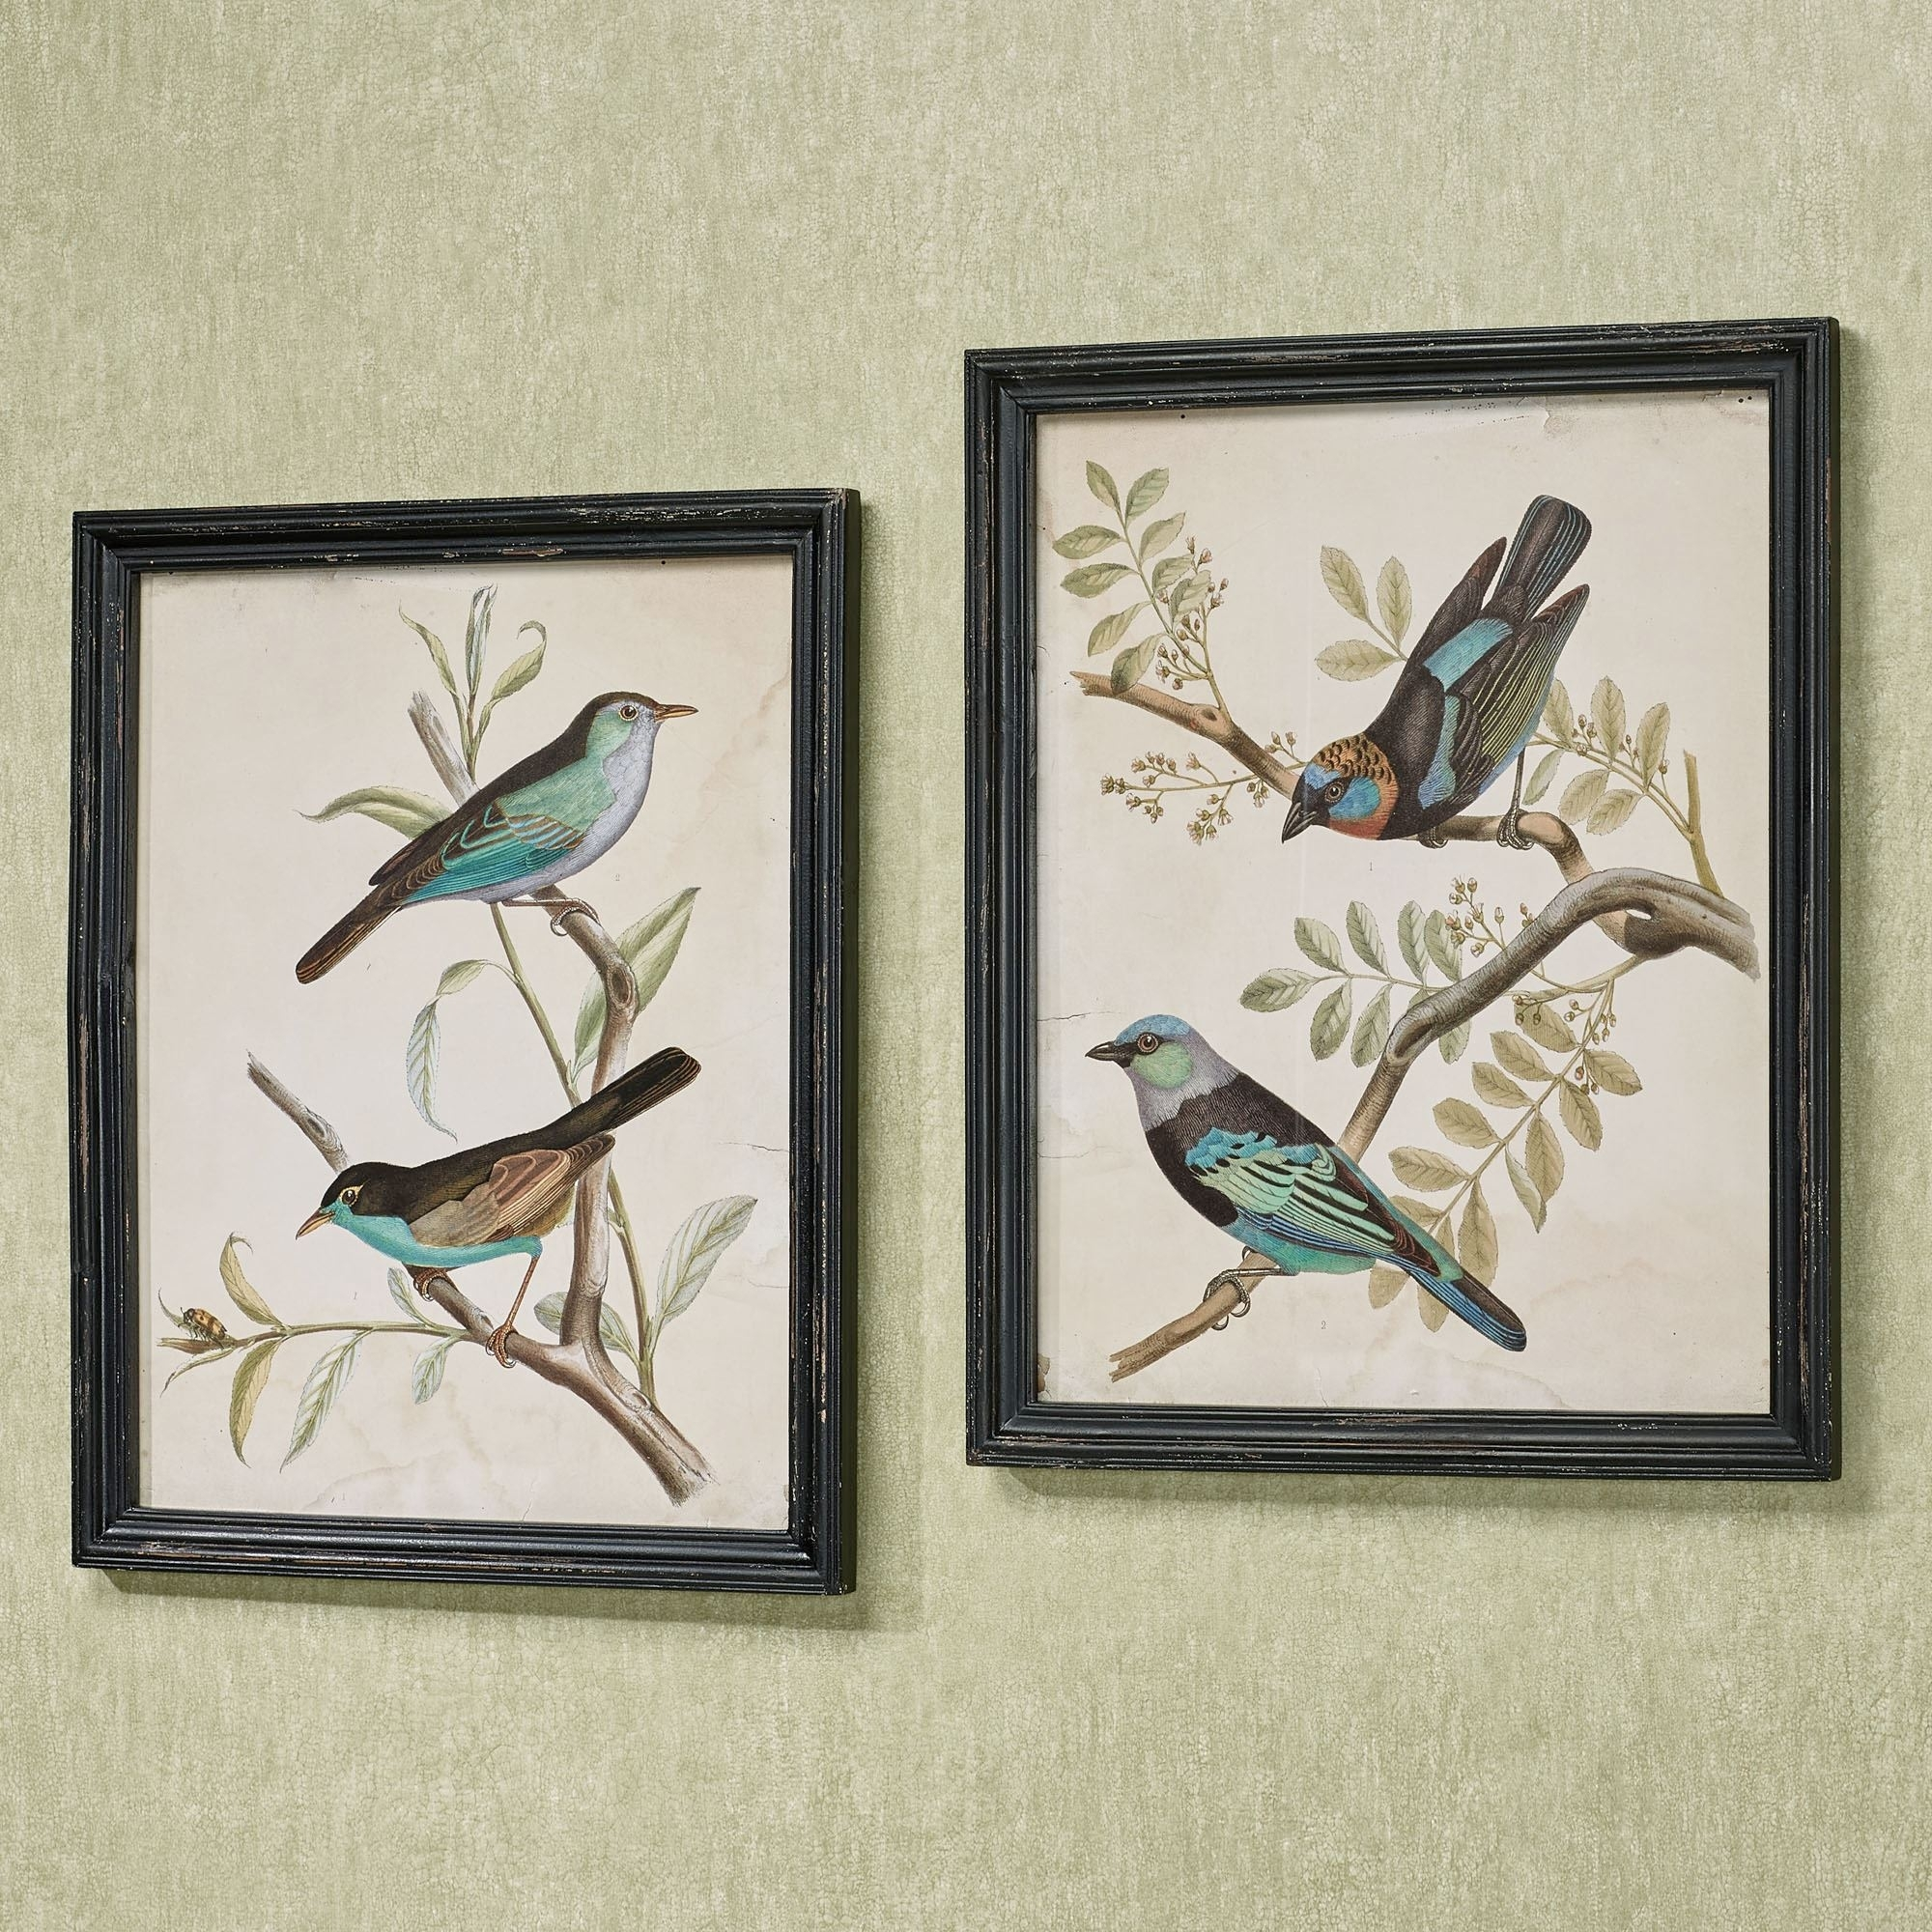 Framed Art Prints | Touch Of Class Pertaining To Most Recently Released Birds Framed Art Prints (View 2 of 15)